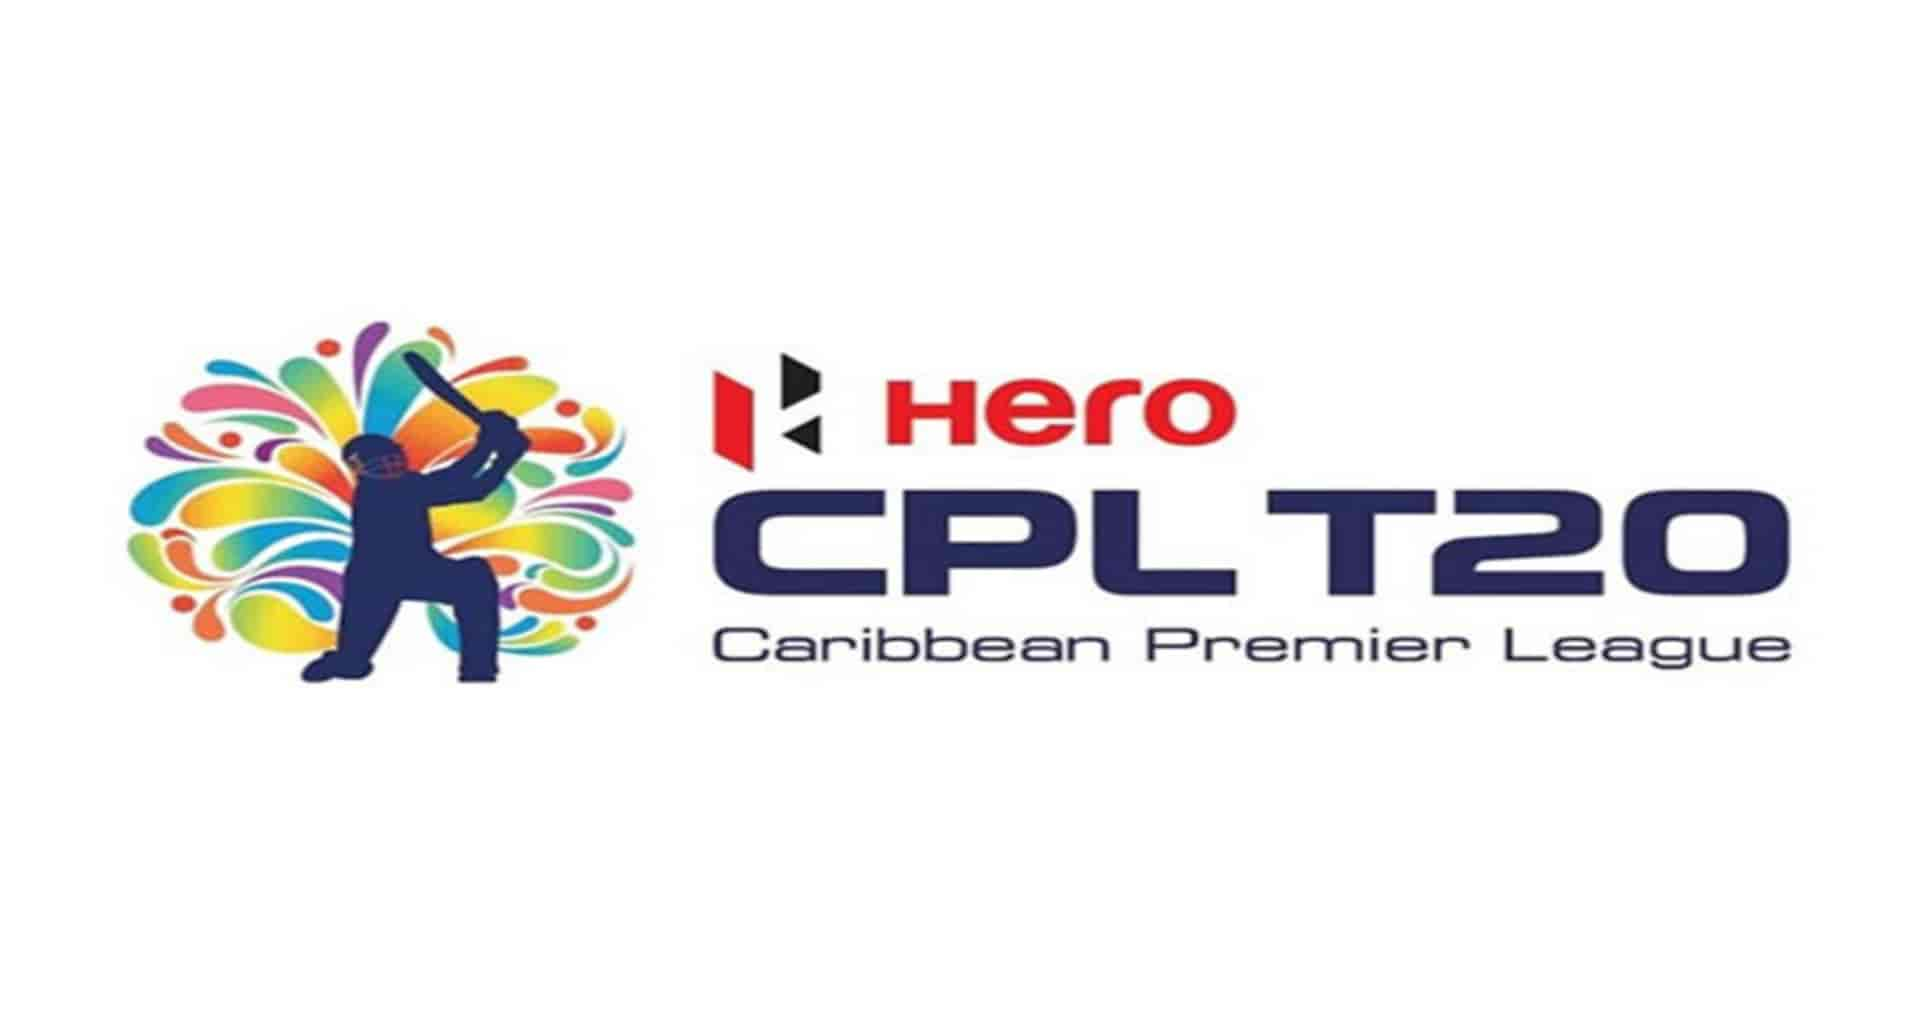 CPL 2020 LIVE : Full Schedule, Live Streaming, Venue, Squads, Date and Timings